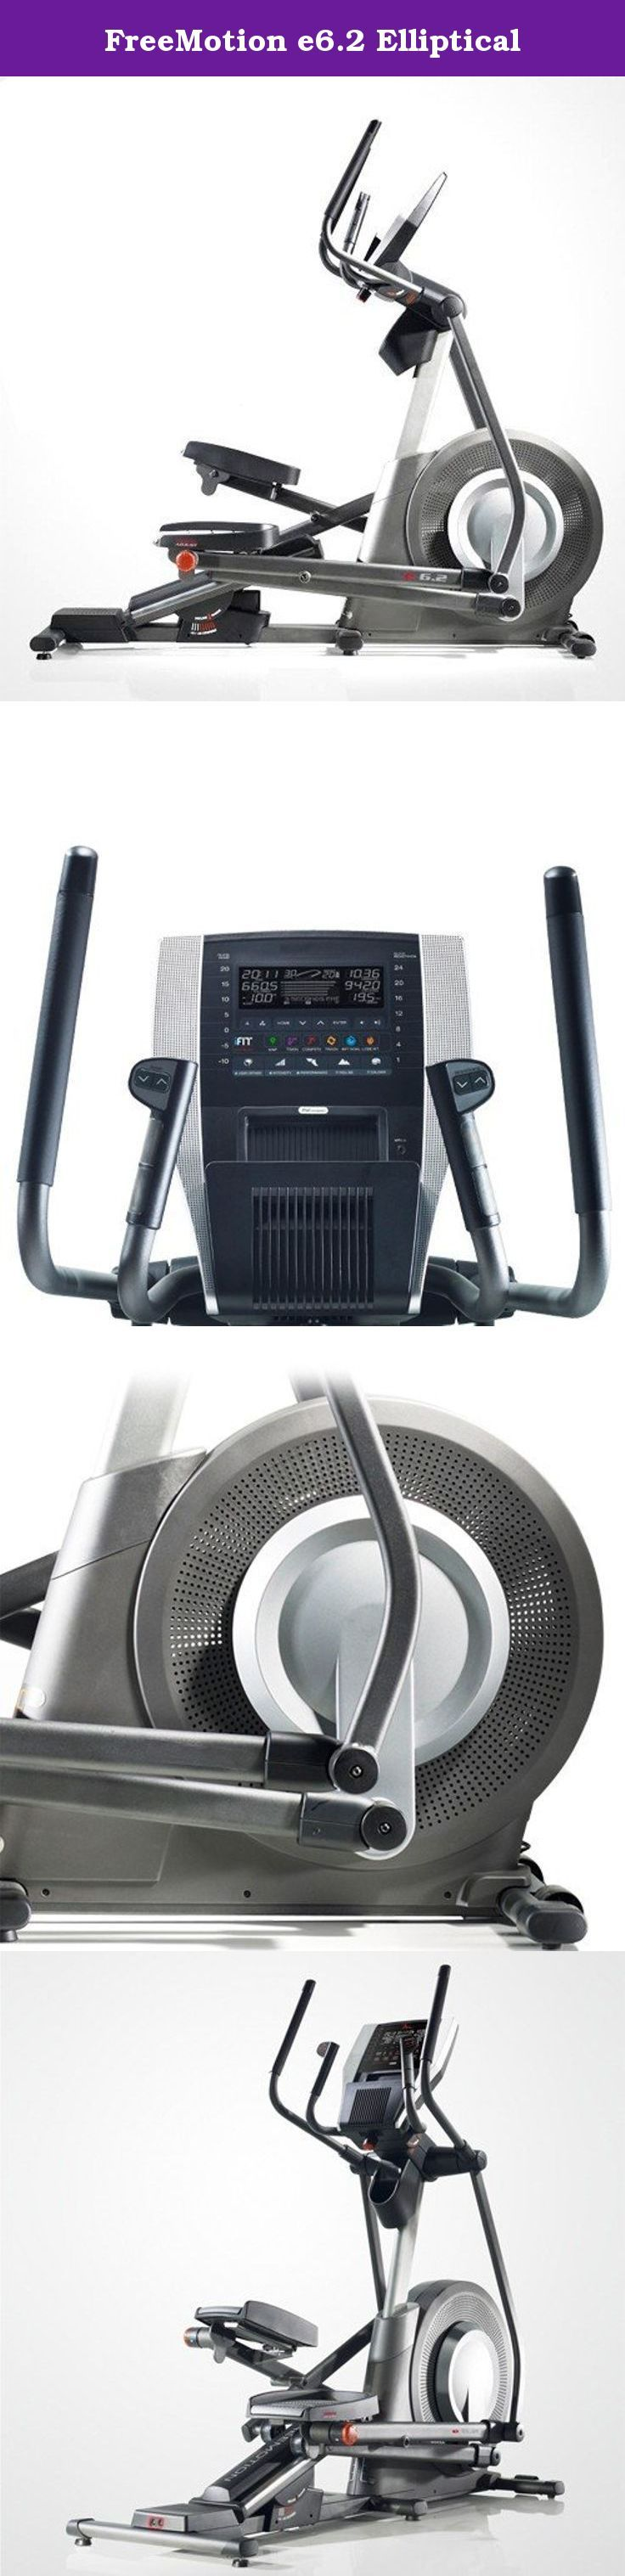 FreeMotion e6.2 Elliptical. The #1 Brand in thousands of health clubs and used by over 50,000 million people World Wide, introduces this Award Winning fully loaded elliptical with Revolutionary features & specs: the only elliptical with New iFit Live & Google Maps Programming option to exercise anywhere in the world!* Elliptical actually sync's up to replicate the hill and valley terrain of any location. Walk or jog on the shores of Maui, Hawaii, hike through the Swiss Alps for the…